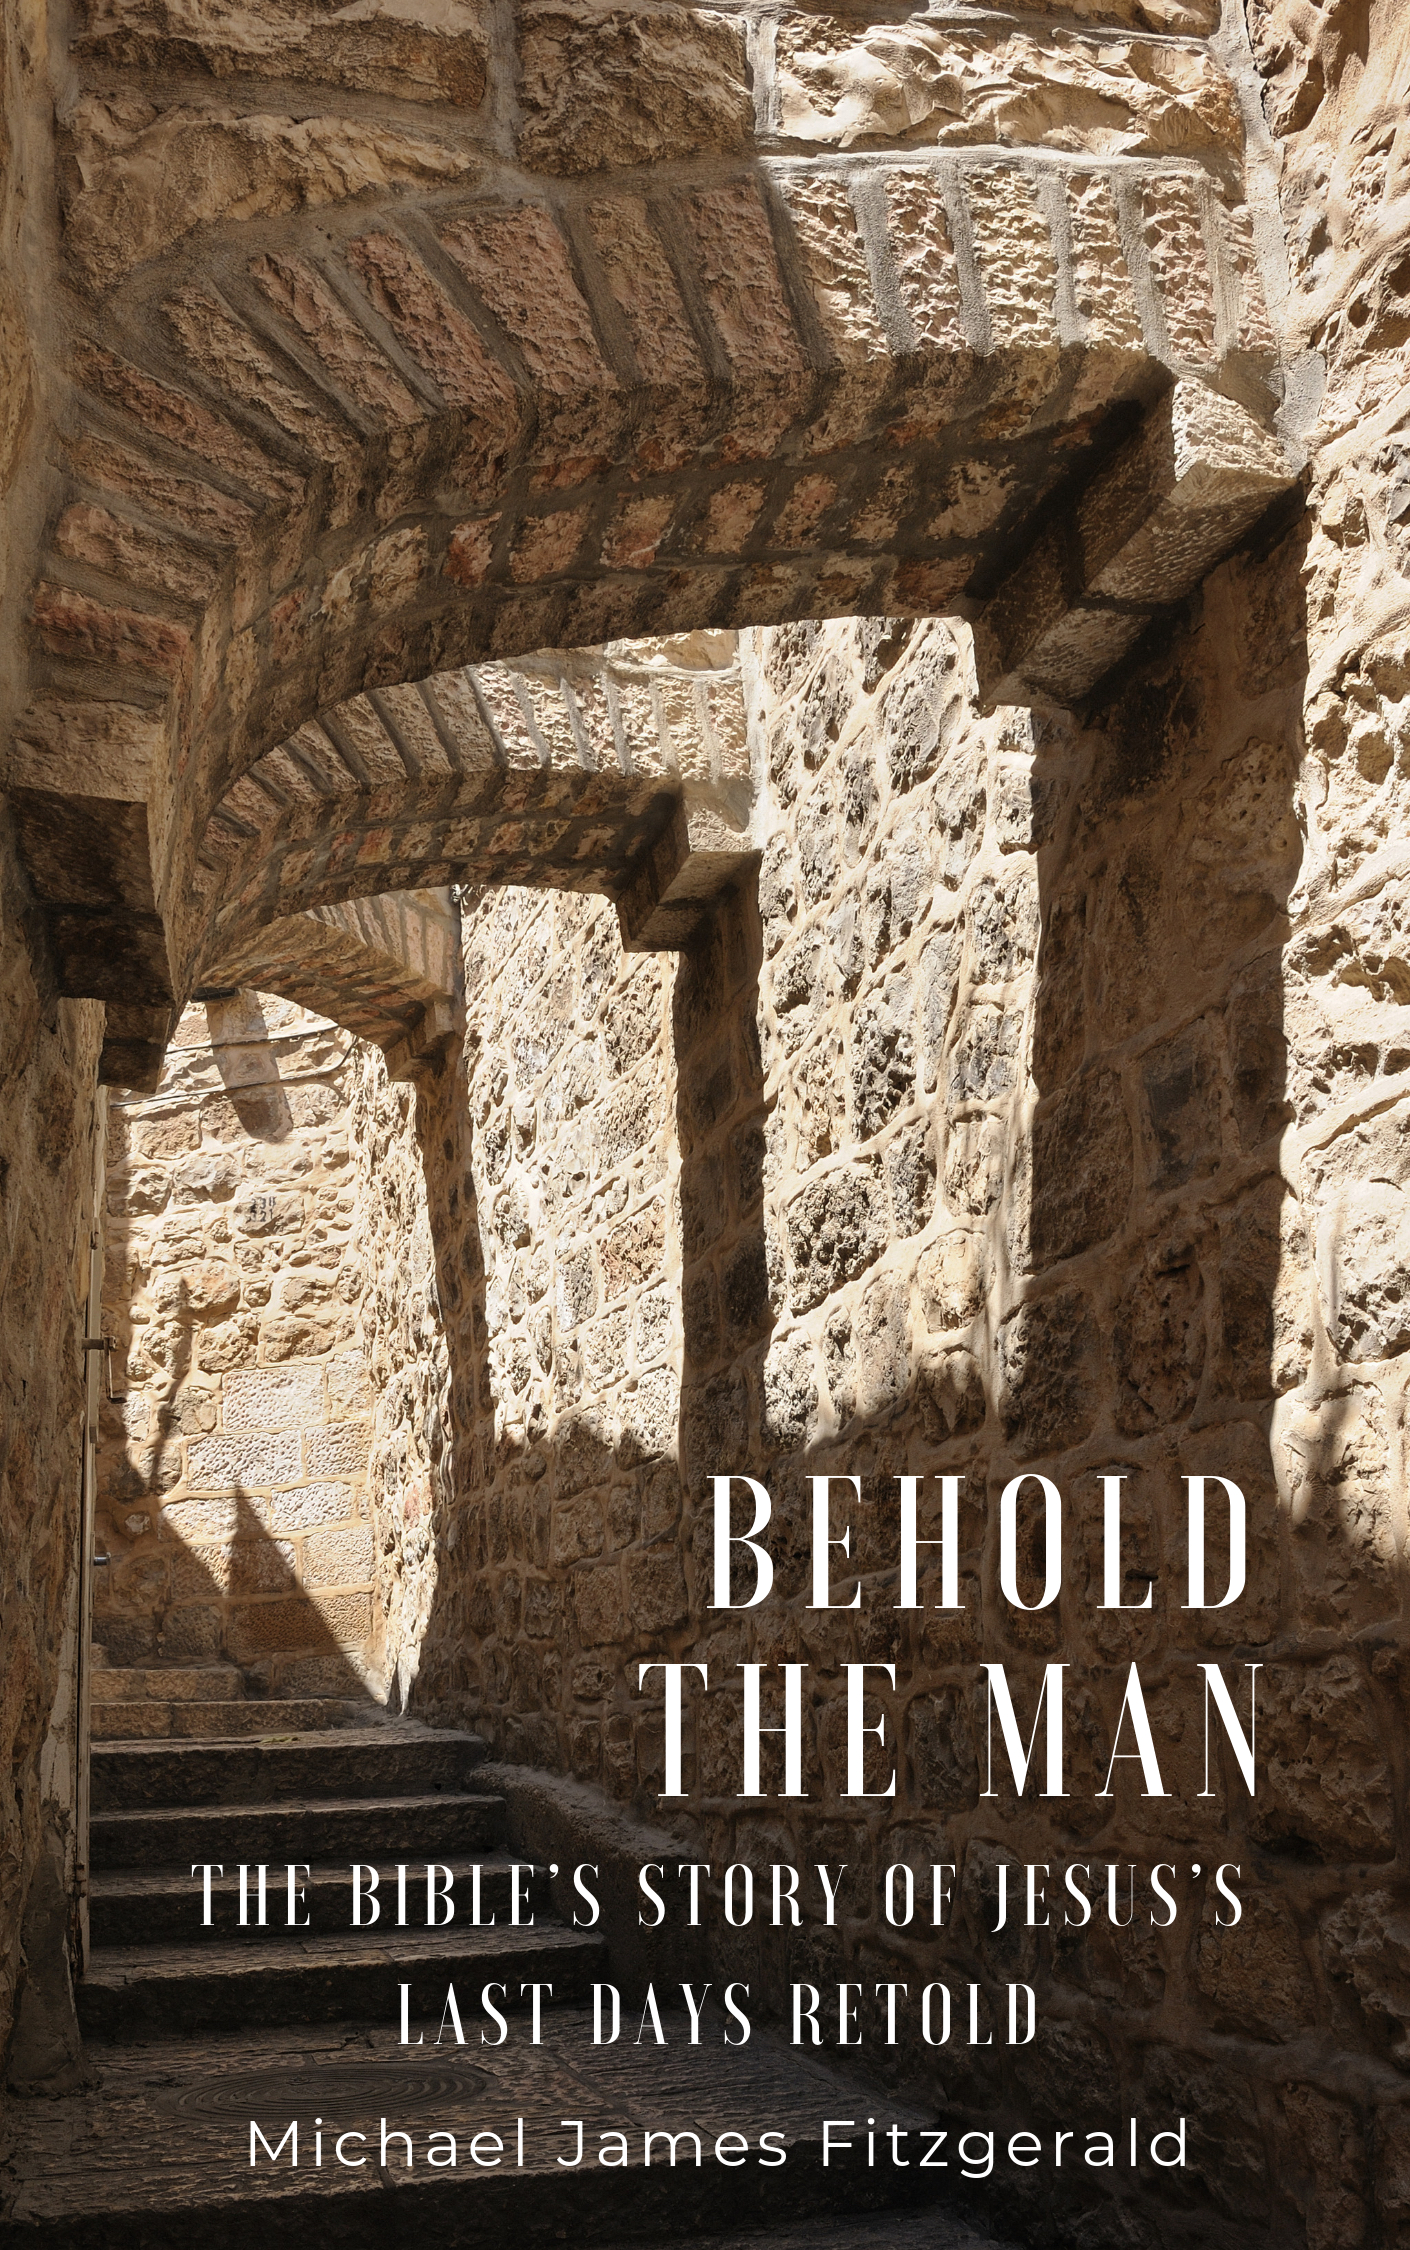 20190417 Behold the Man Kindle Cover